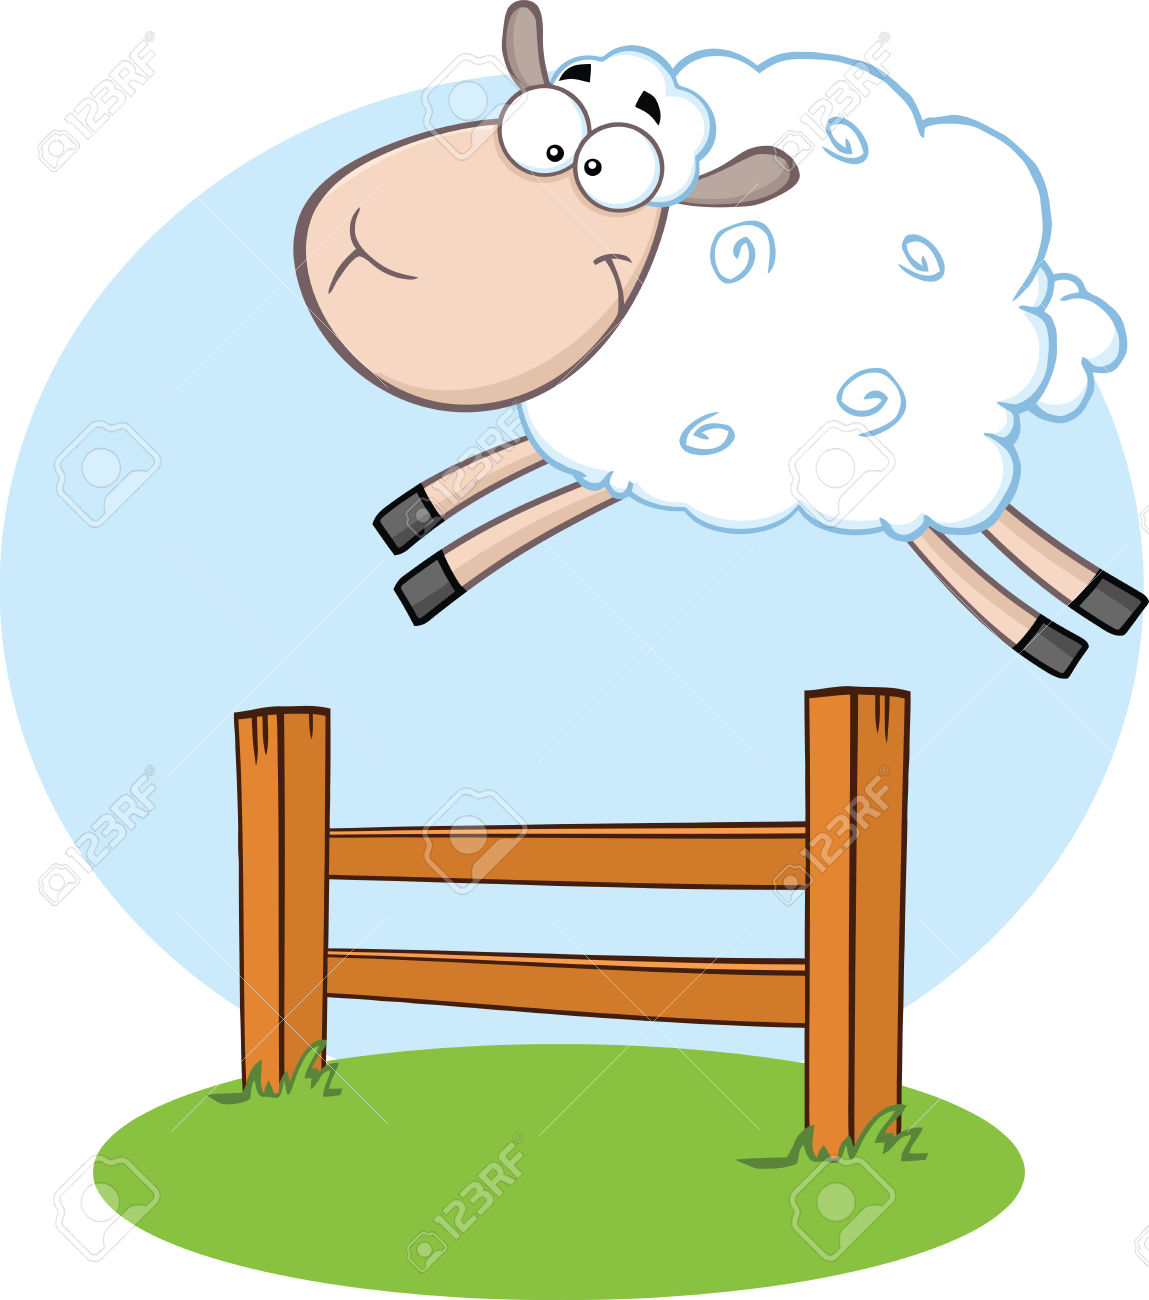 White Sheep Jumping Over The Fence Illustration Isolated On.